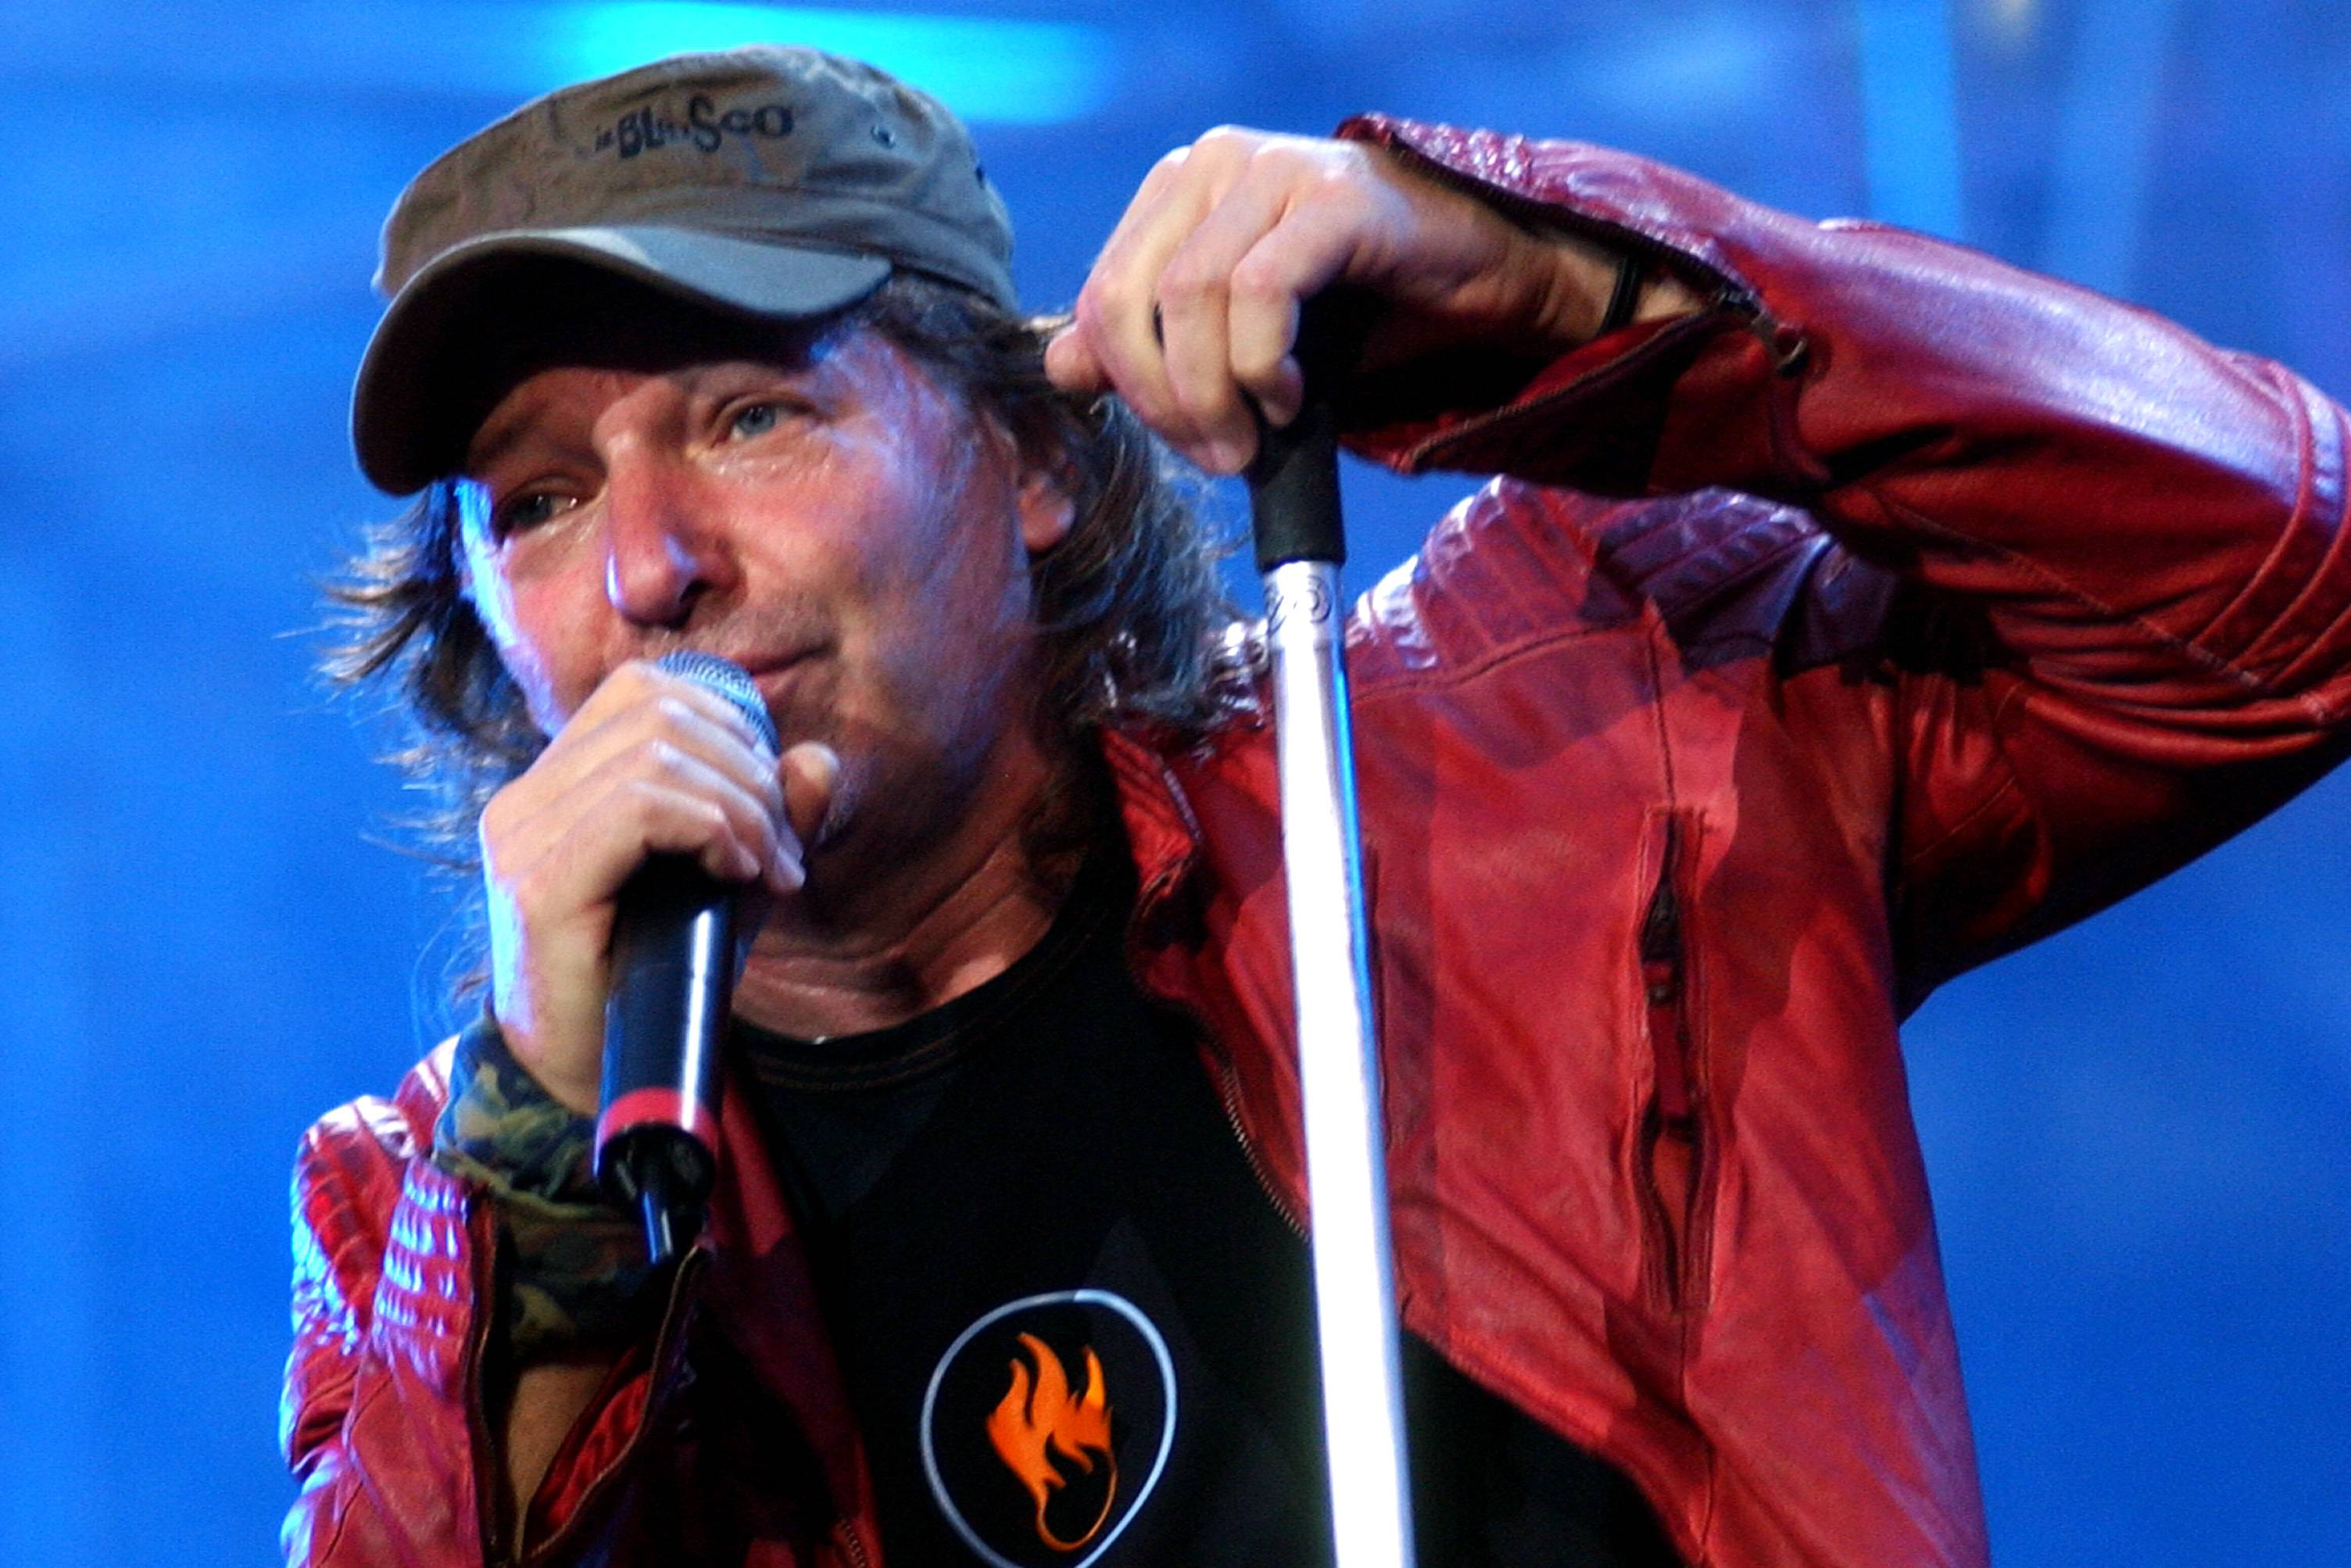 Video E Vasco Rossi Happy Birthday Vasco Rossi I Love Italian Movies